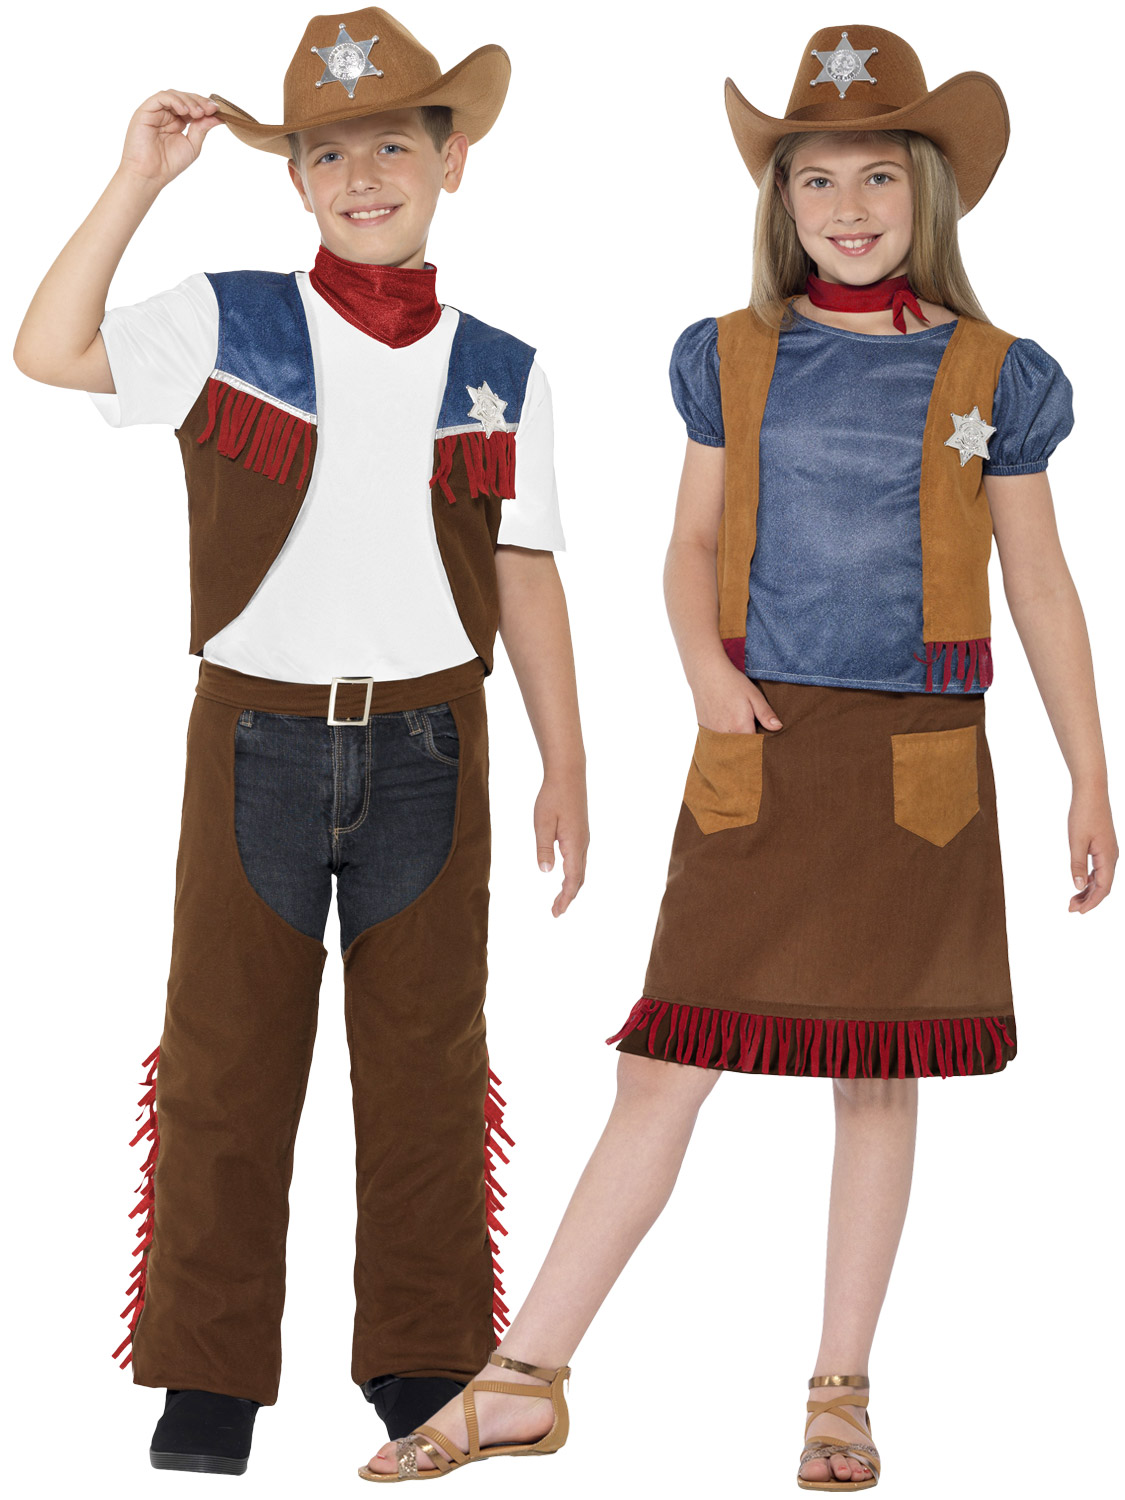 Childrens Cowboy Costume Boys Girls Western Texas Cowgirl Fancy Dress Kids Outfi | eBay